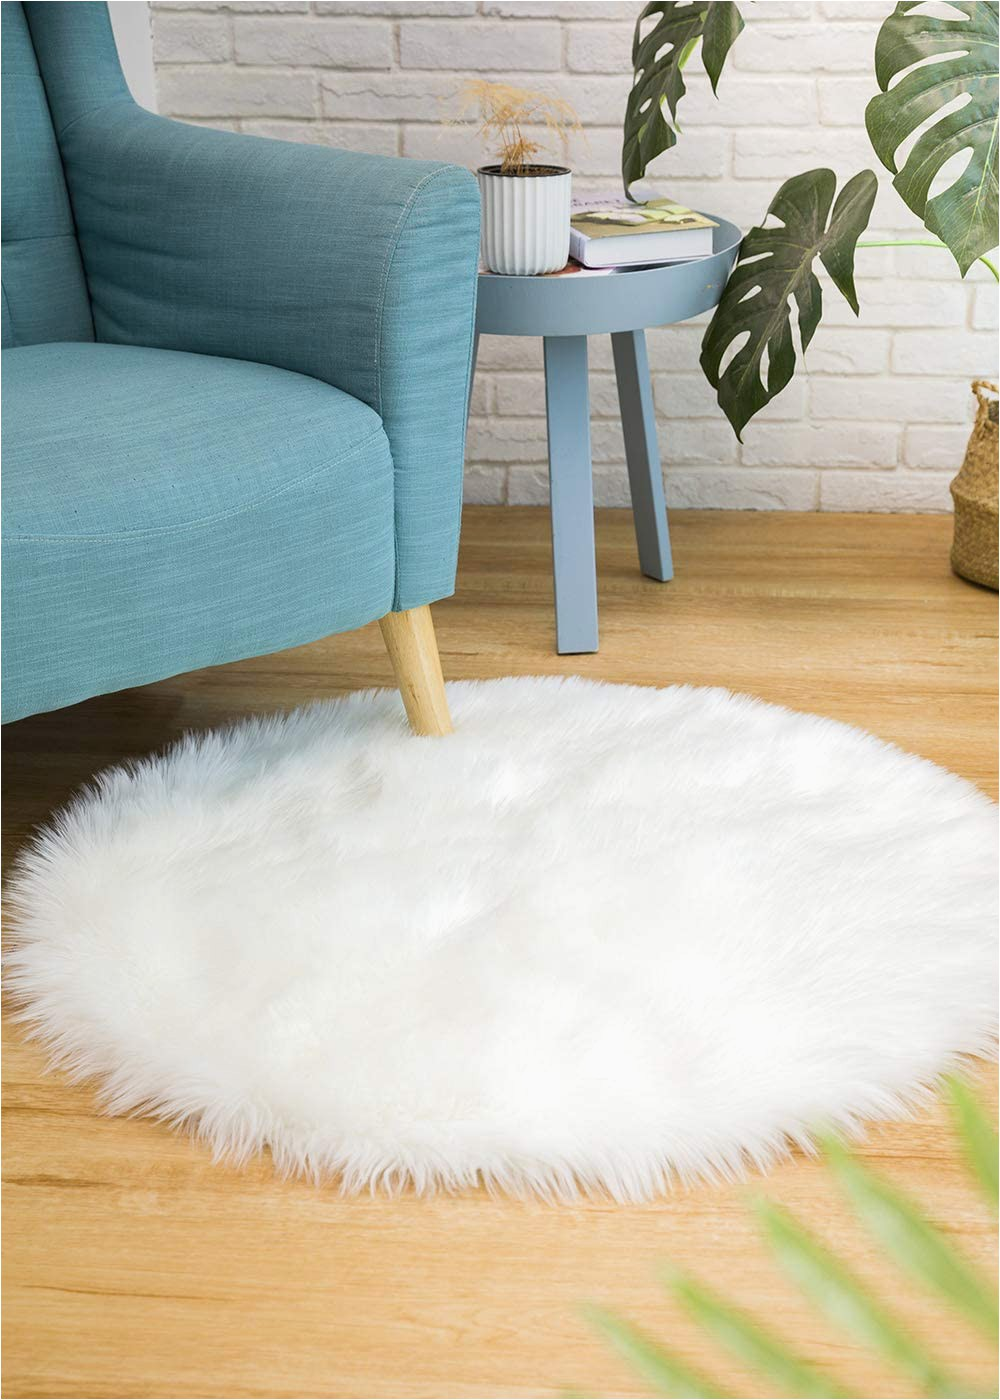 Faux Animal Skin area Rugs Ciicool soft Faux Sheepskin Fur area Rugs Round Fluffy Rugs for Bedroom Silky Fuzzy Carpet Furry Rug for Living Room Girls Rooms White 3 X 3 Feet